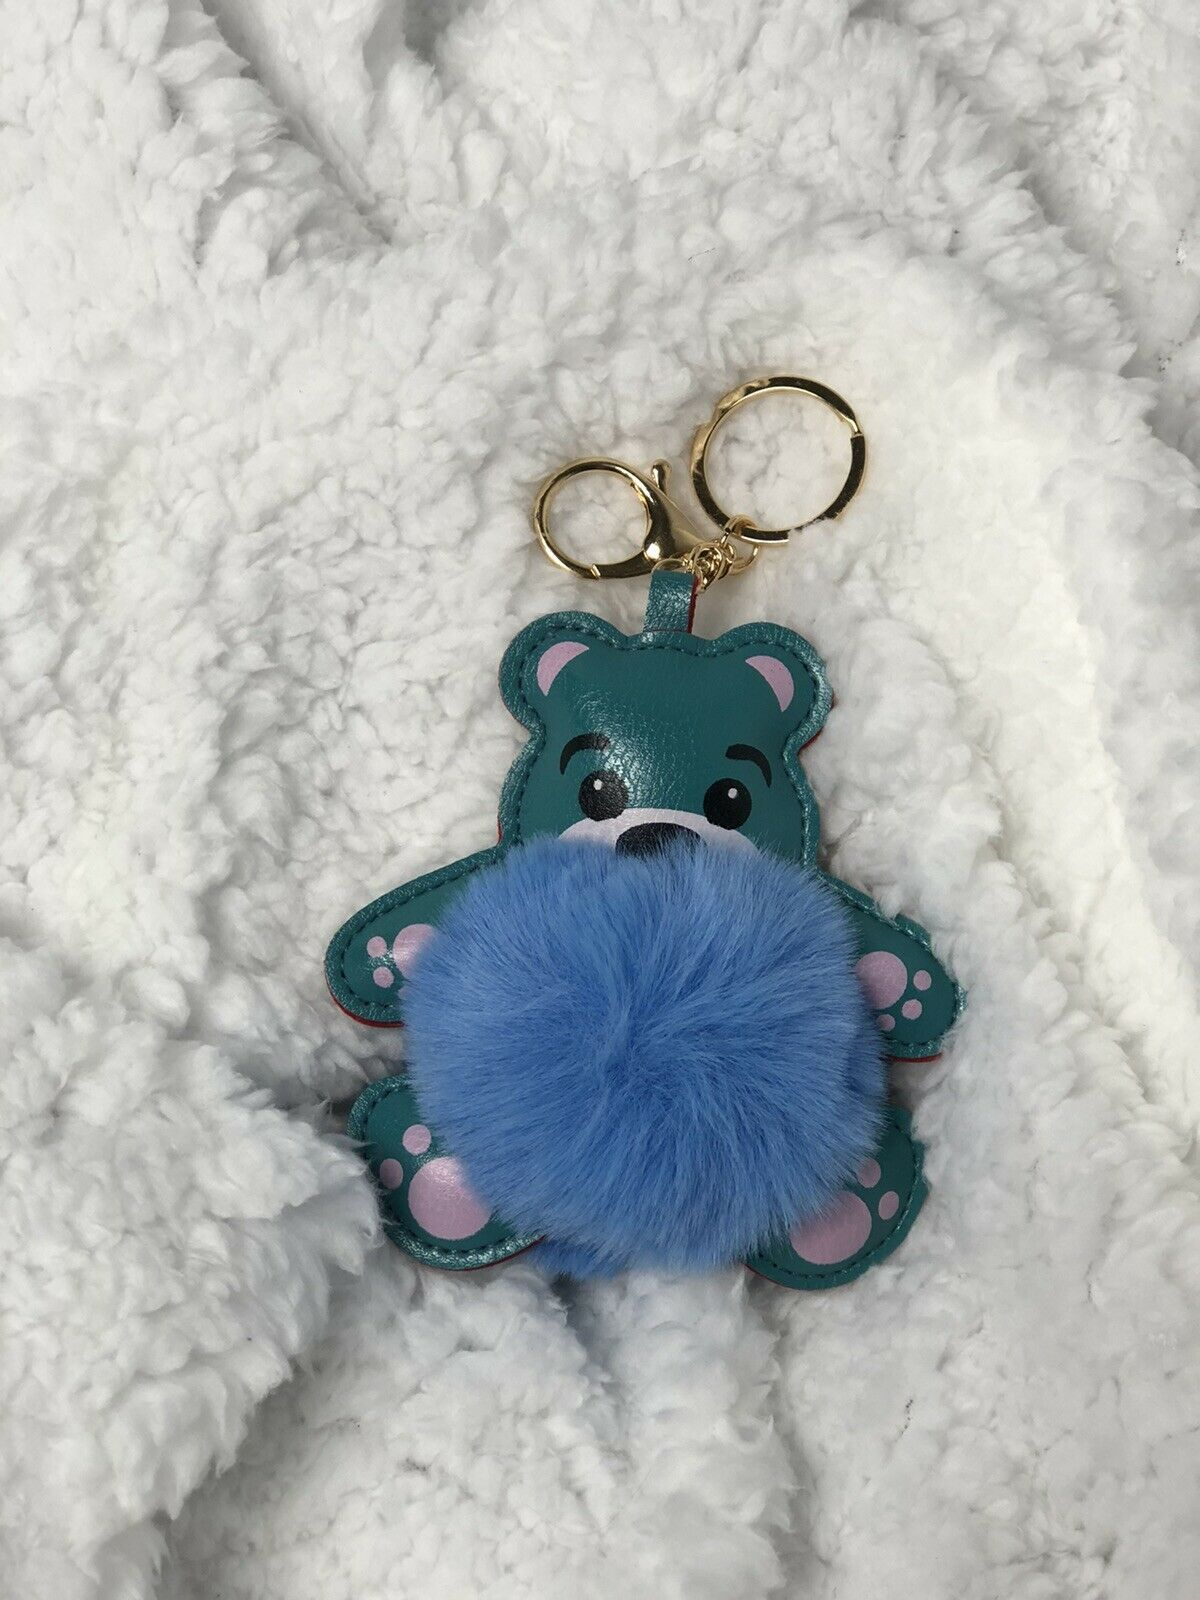 Primary image for Fuzzy Fluffy Bear Faux Fur And PU leather Bag Charm Keychain Accessory US Seller